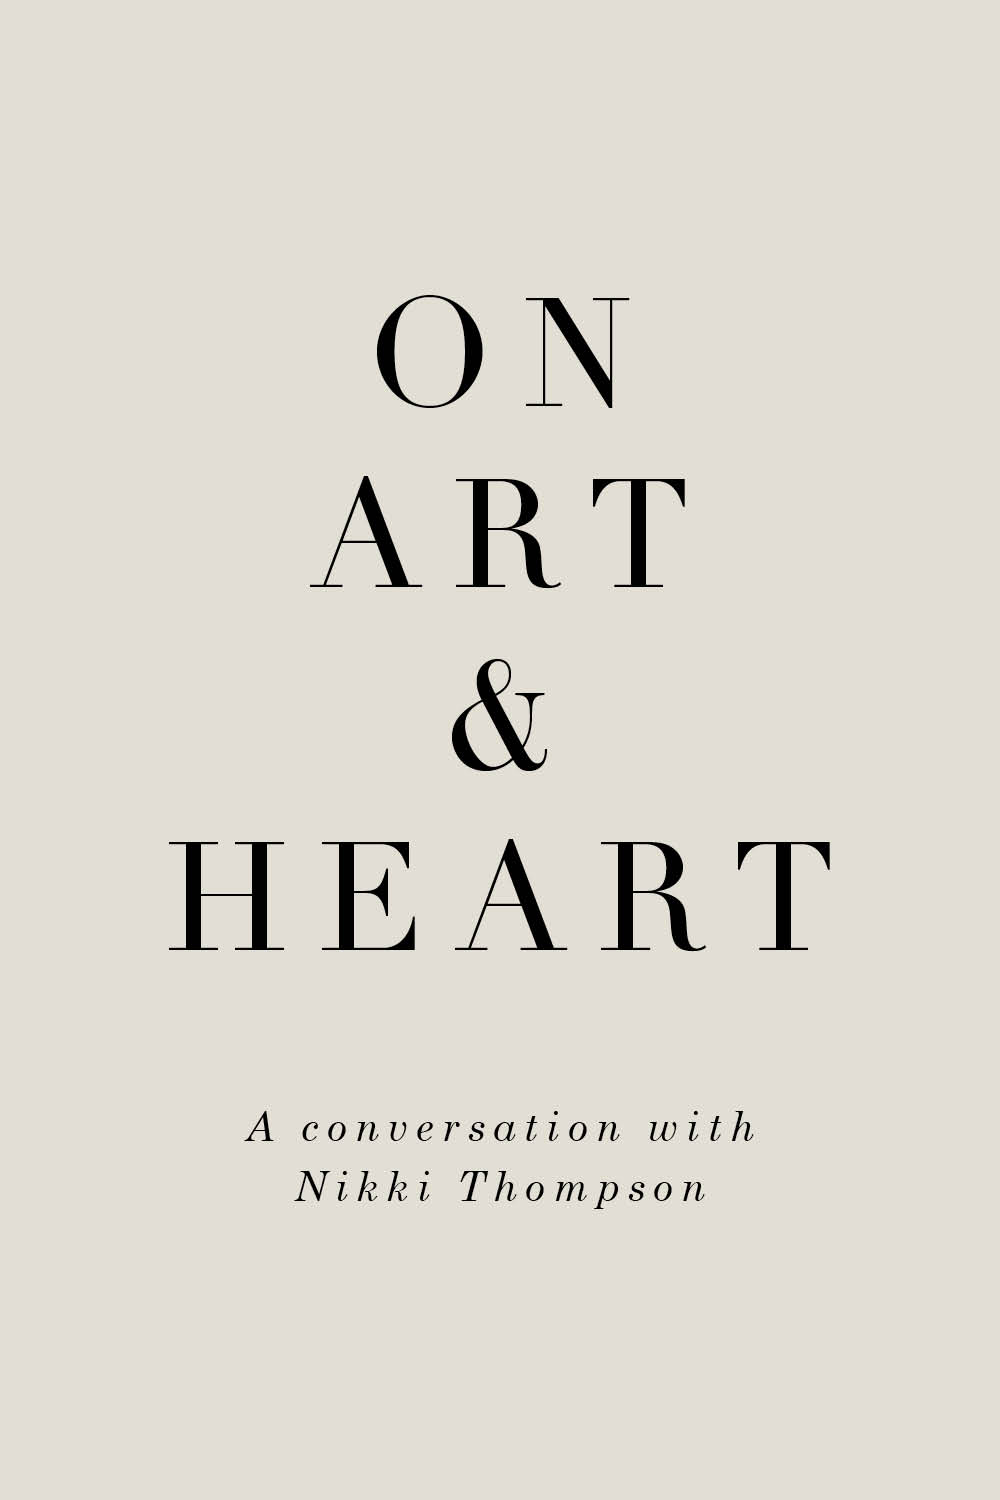 On Art & Heart—Nikki Thompson (A series of conversations edited by Rhonda.H.Y.Mason)